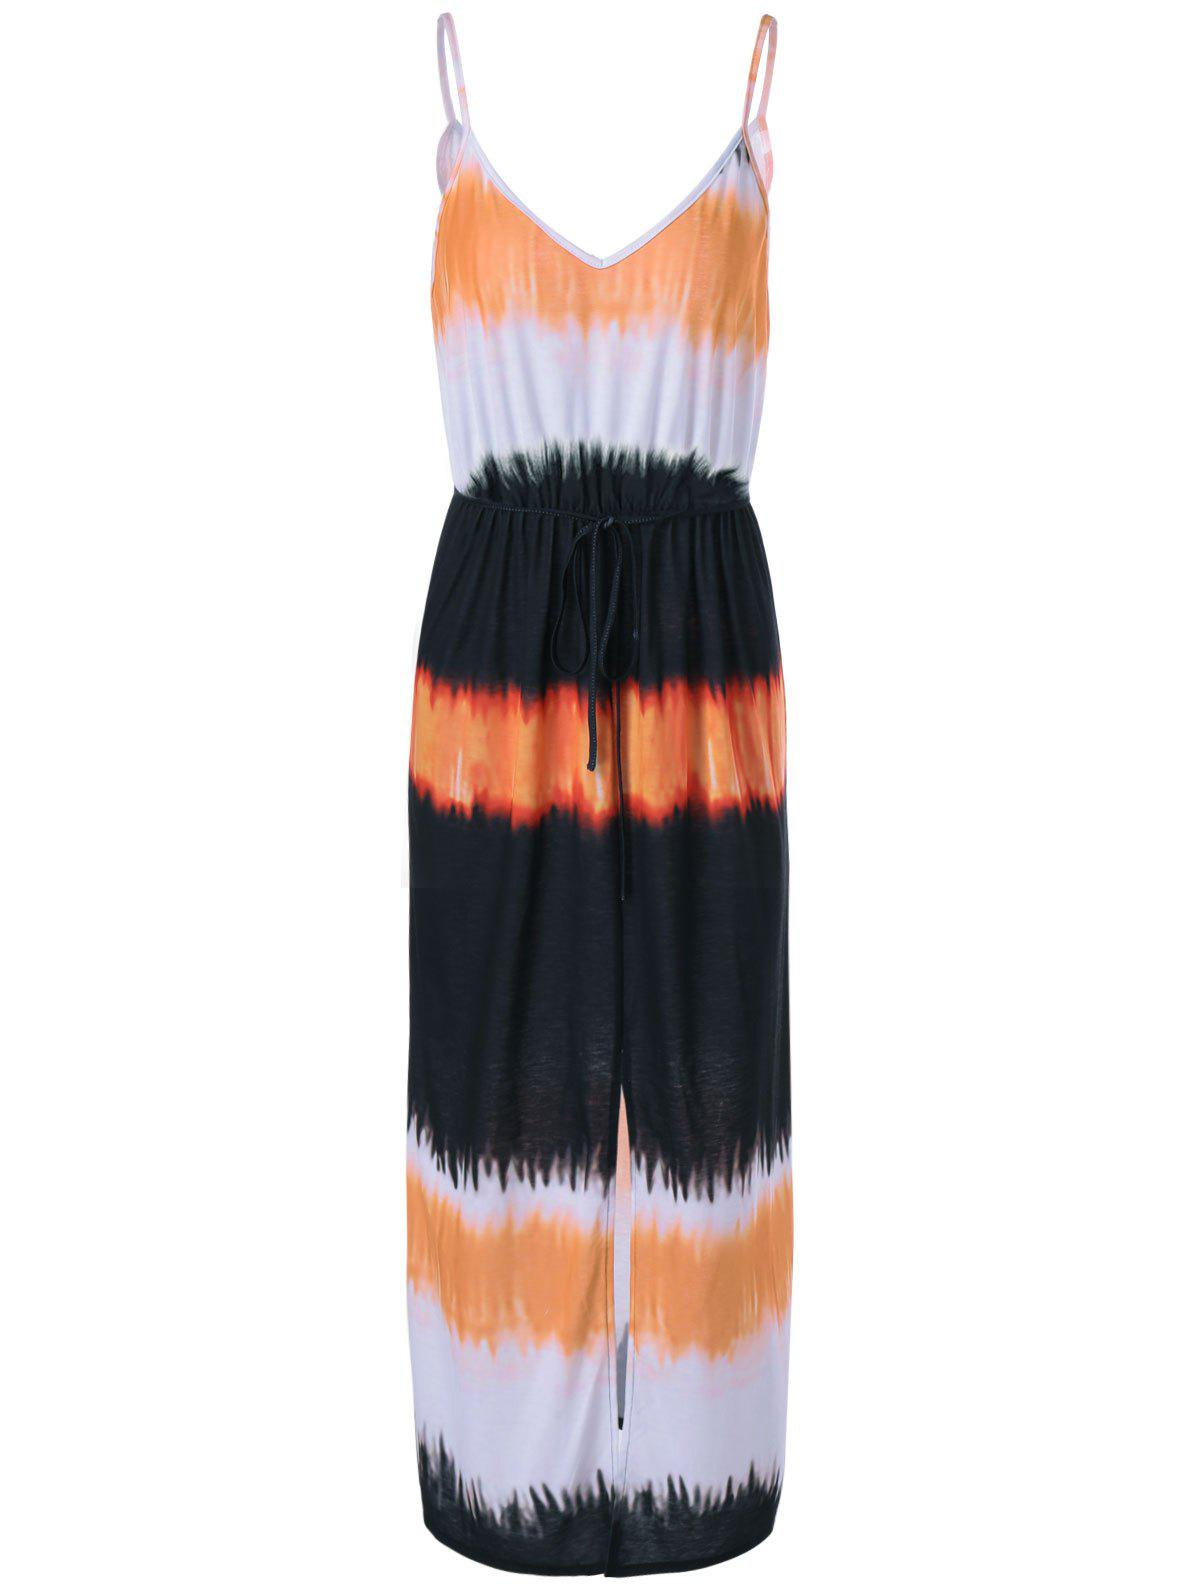 Women's Stylish Condole Belt Tie-Dye Side Slit Dress - COLORMIX XL